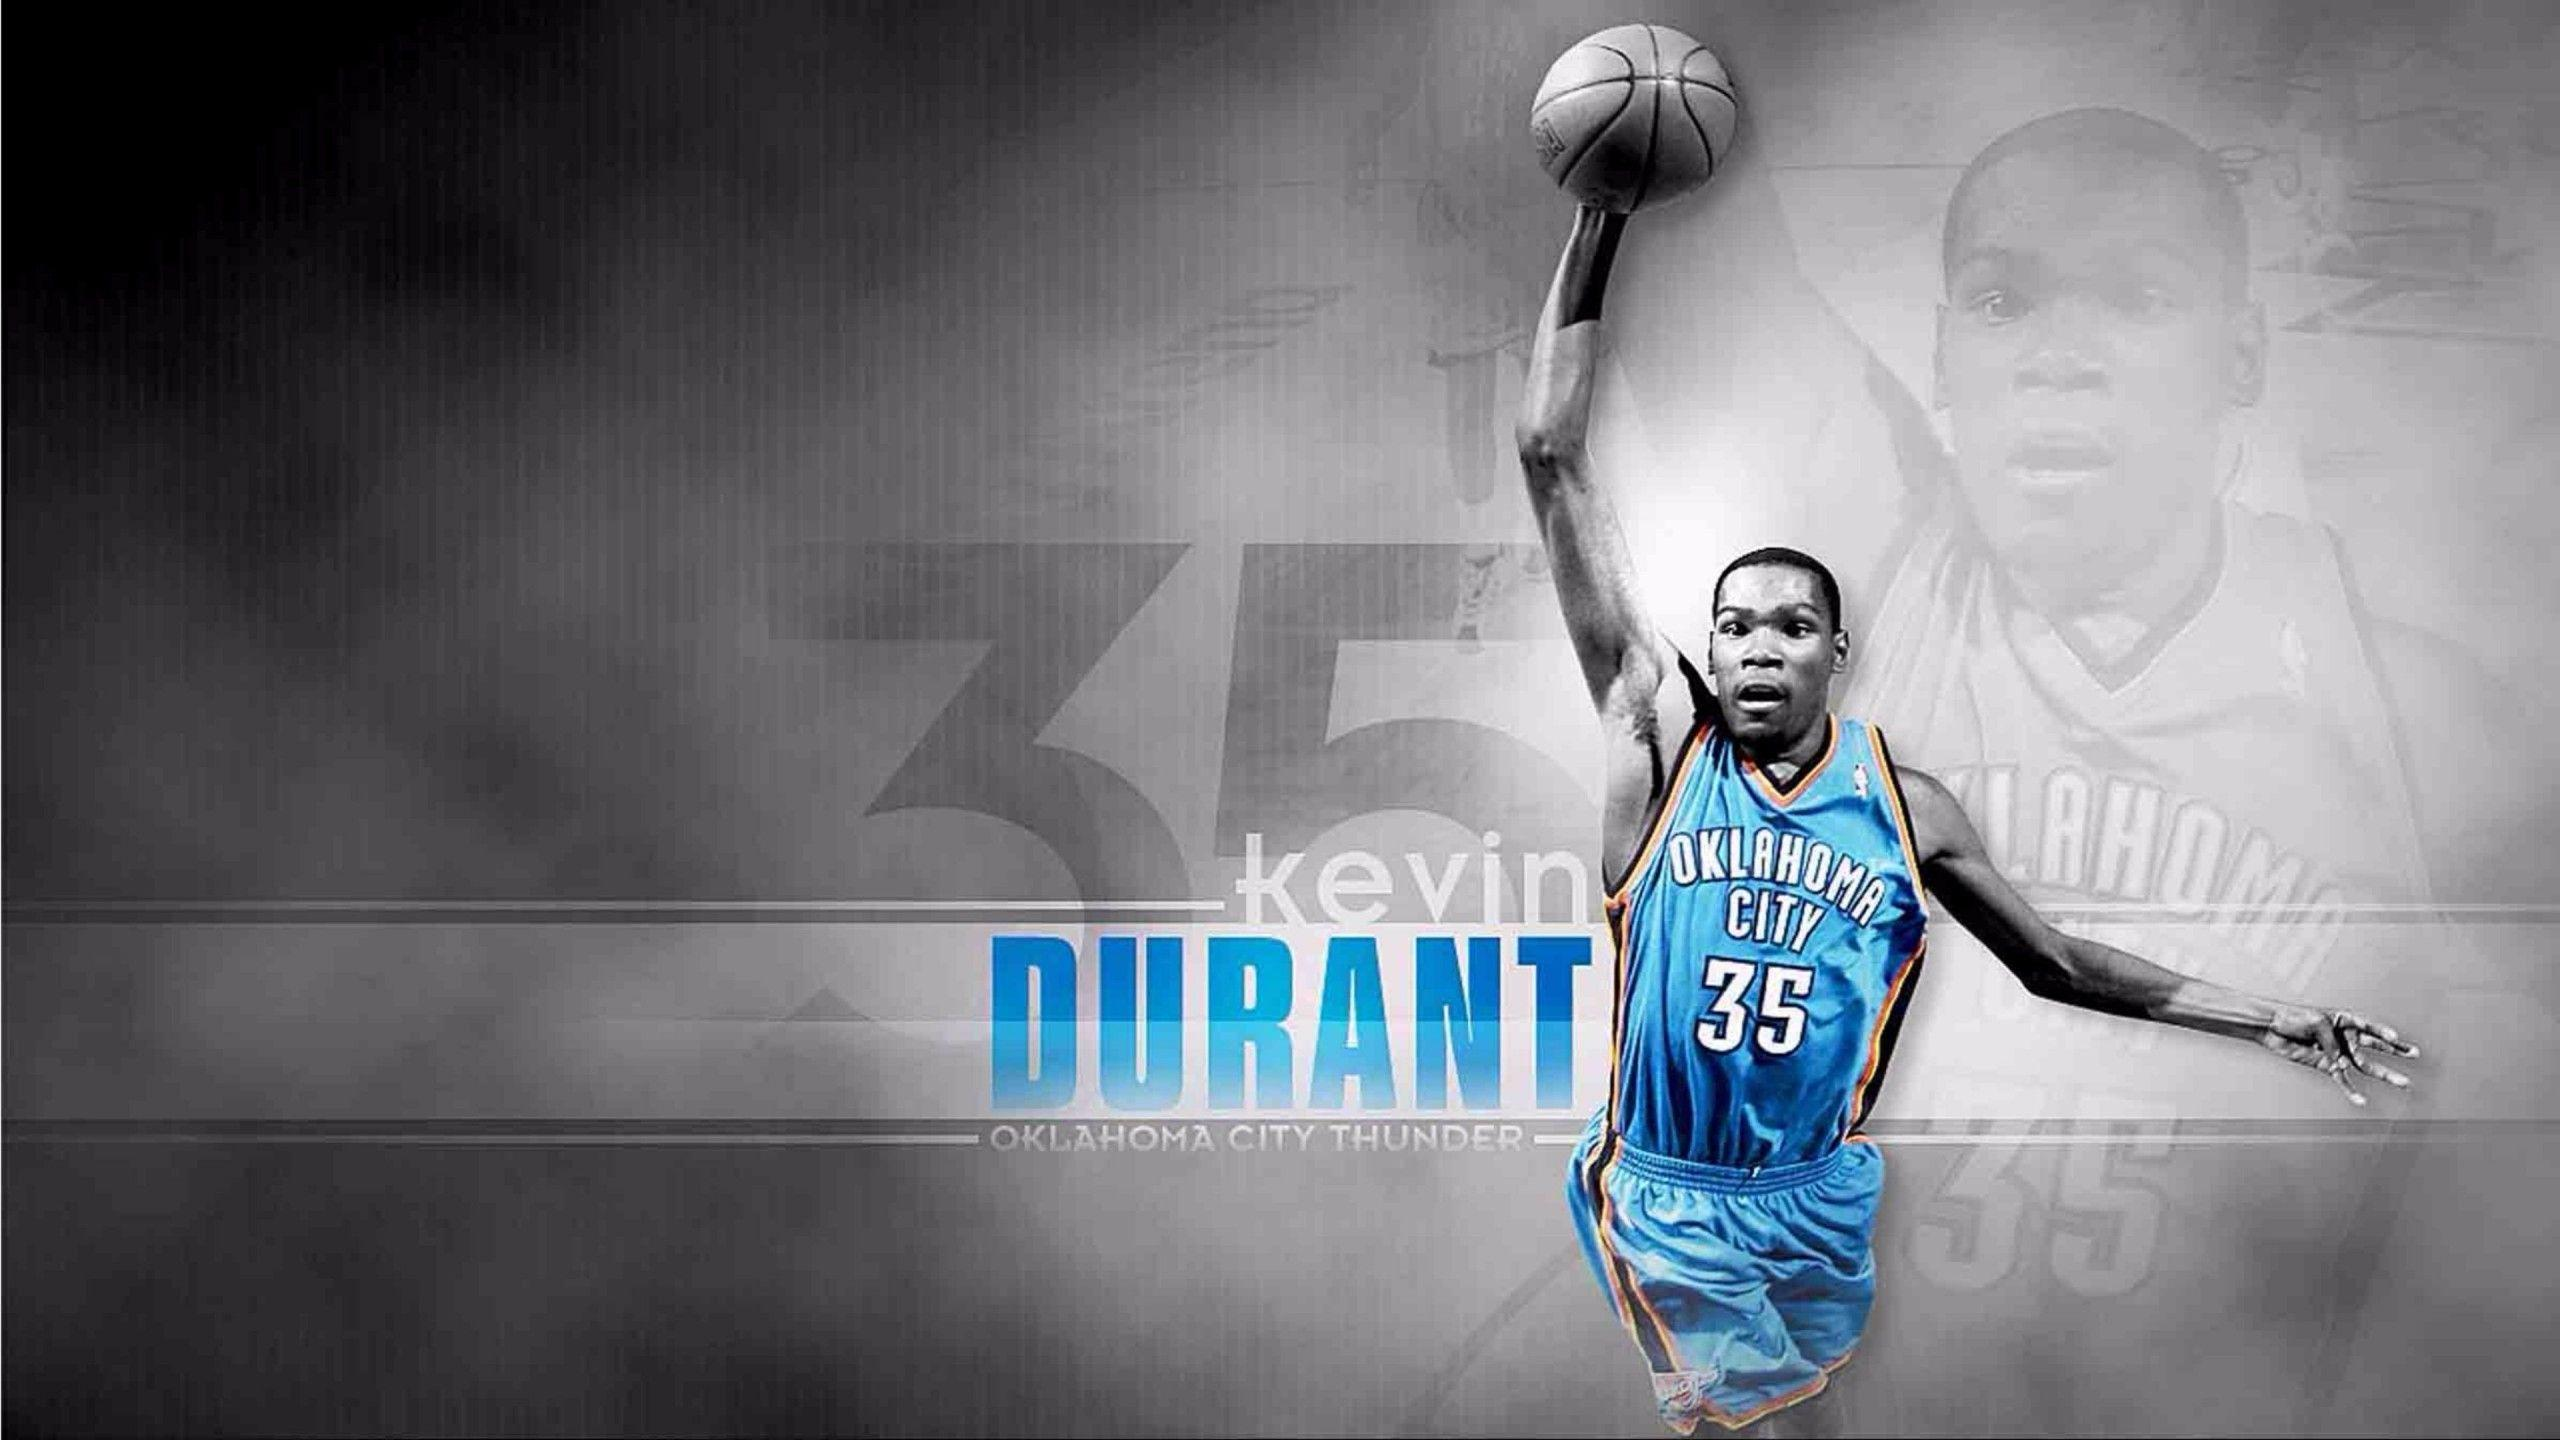 Kevin Durant Wallpapers HD 2016 - Wallpaper Cave